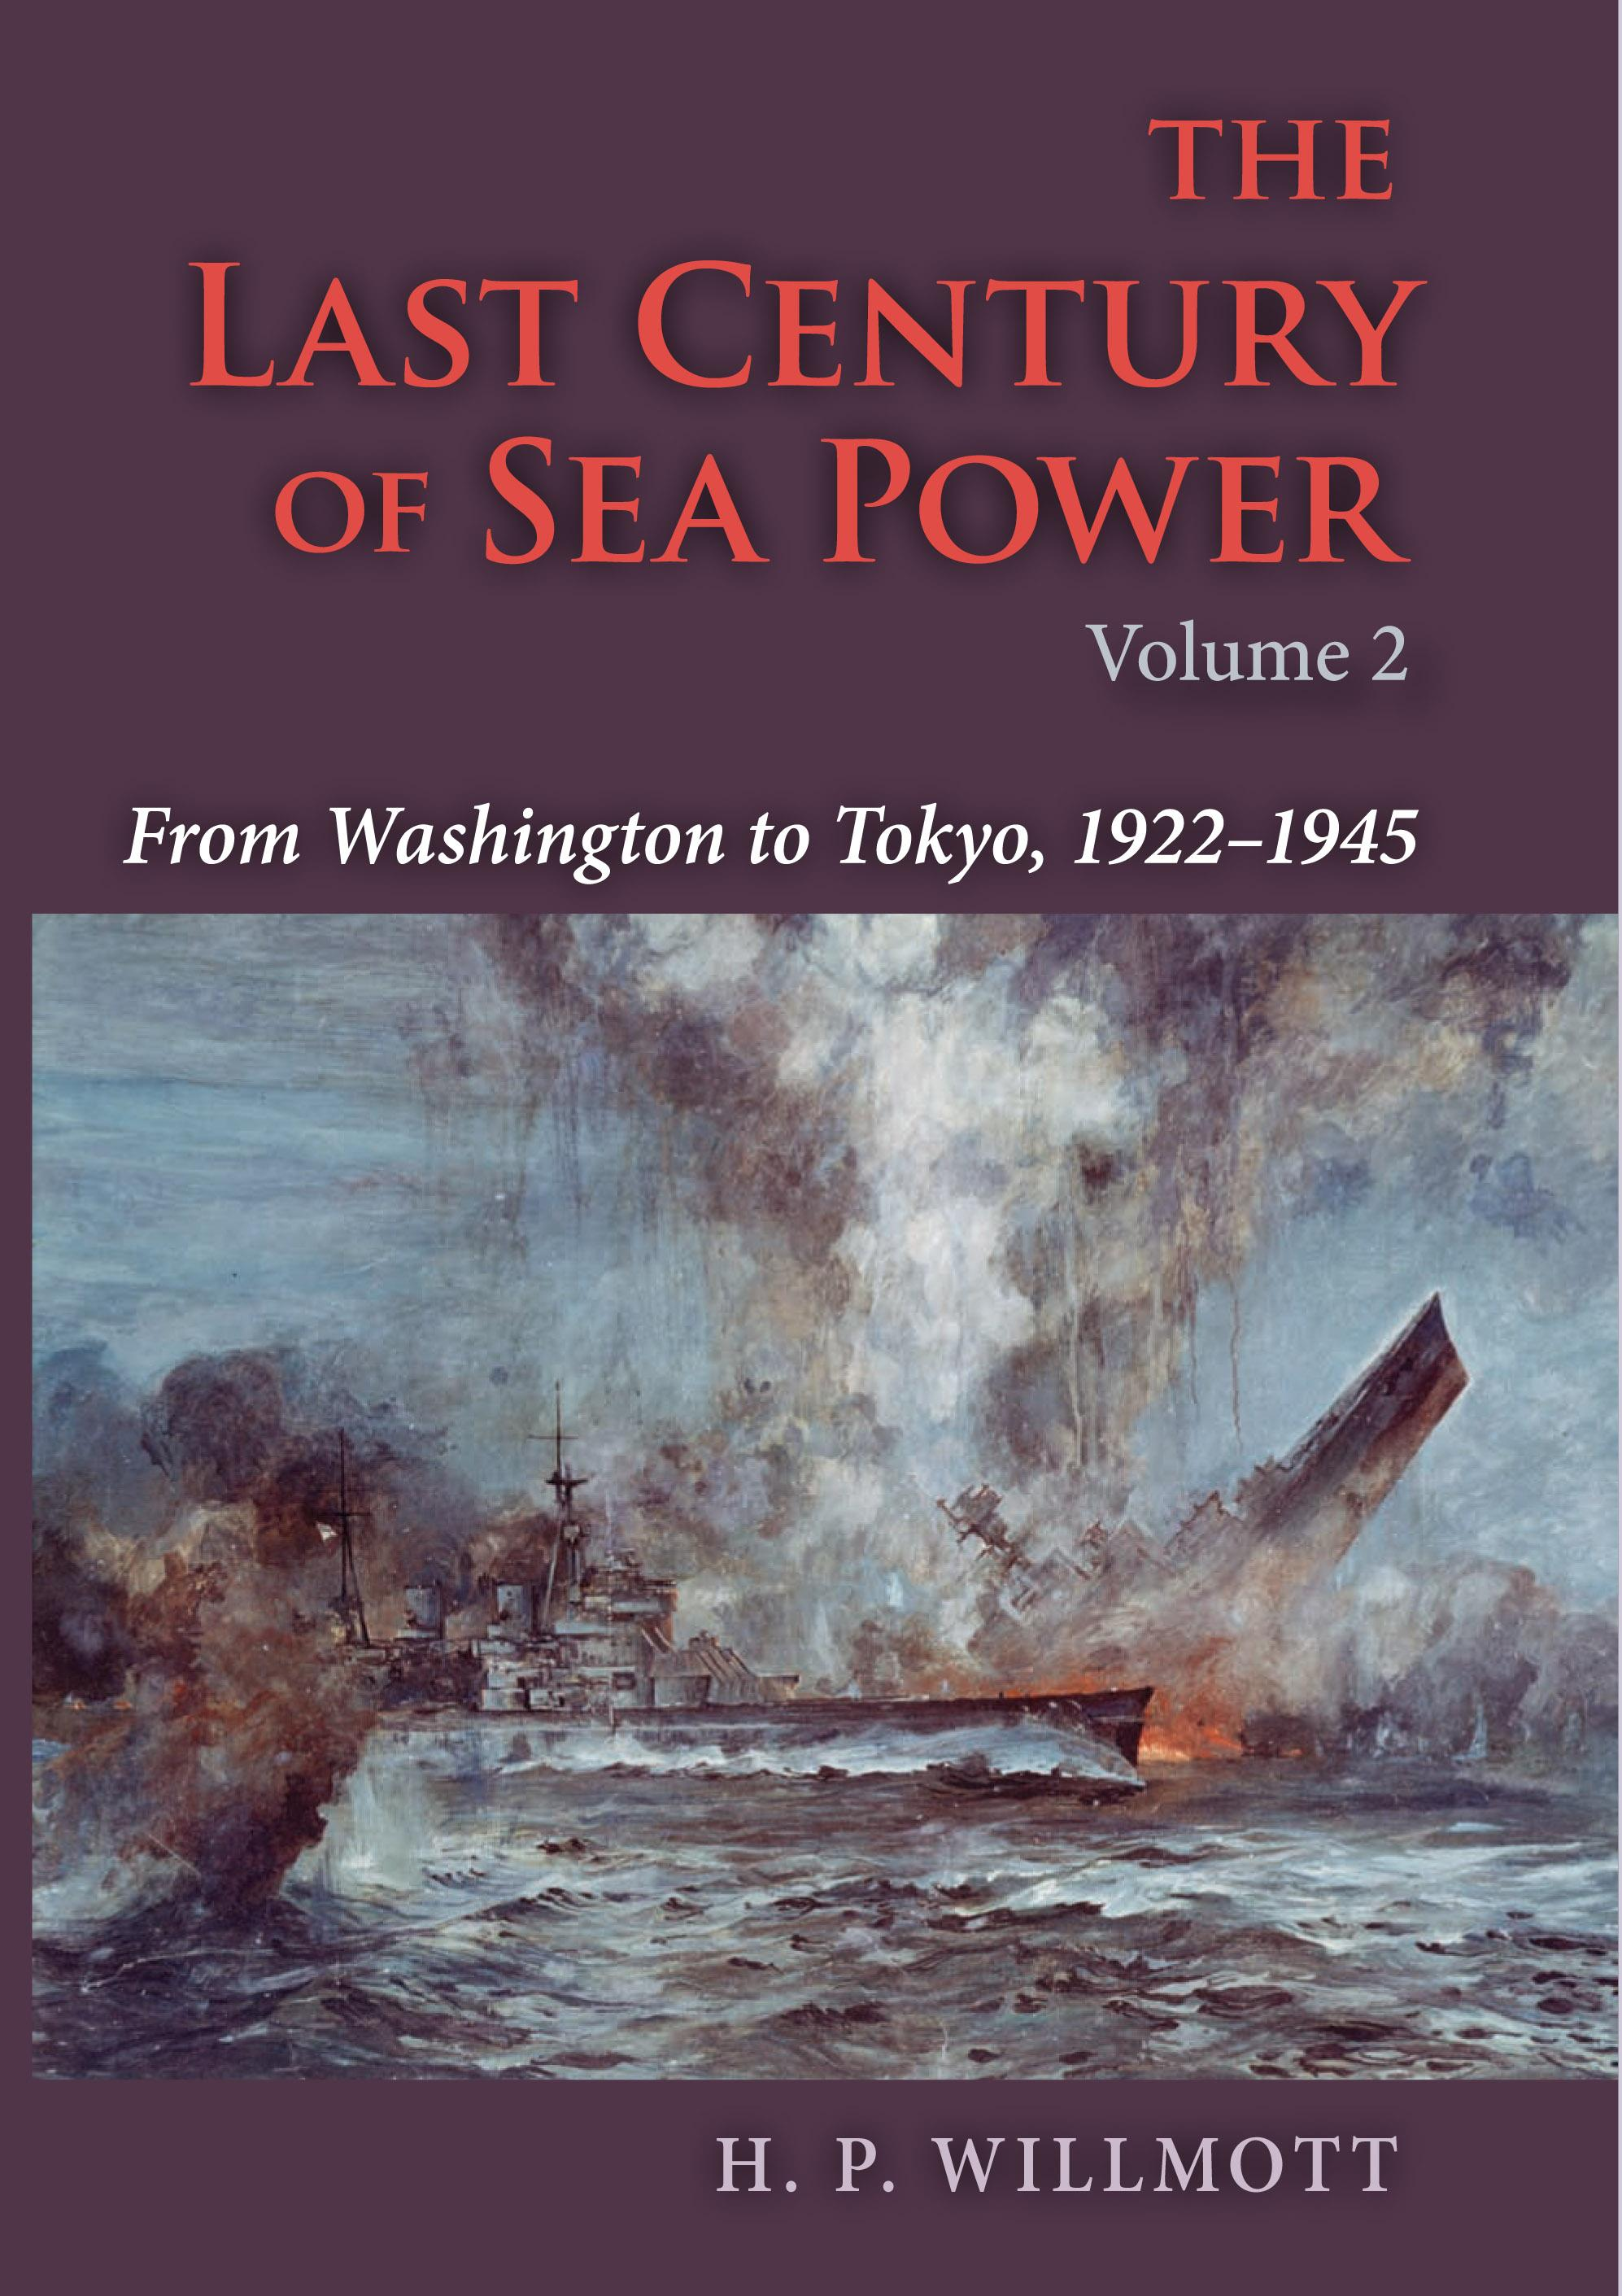 The Last Century of Sea Power, Volume 2: From Washington to Tokyo, 1922-1945 EB9780253004093